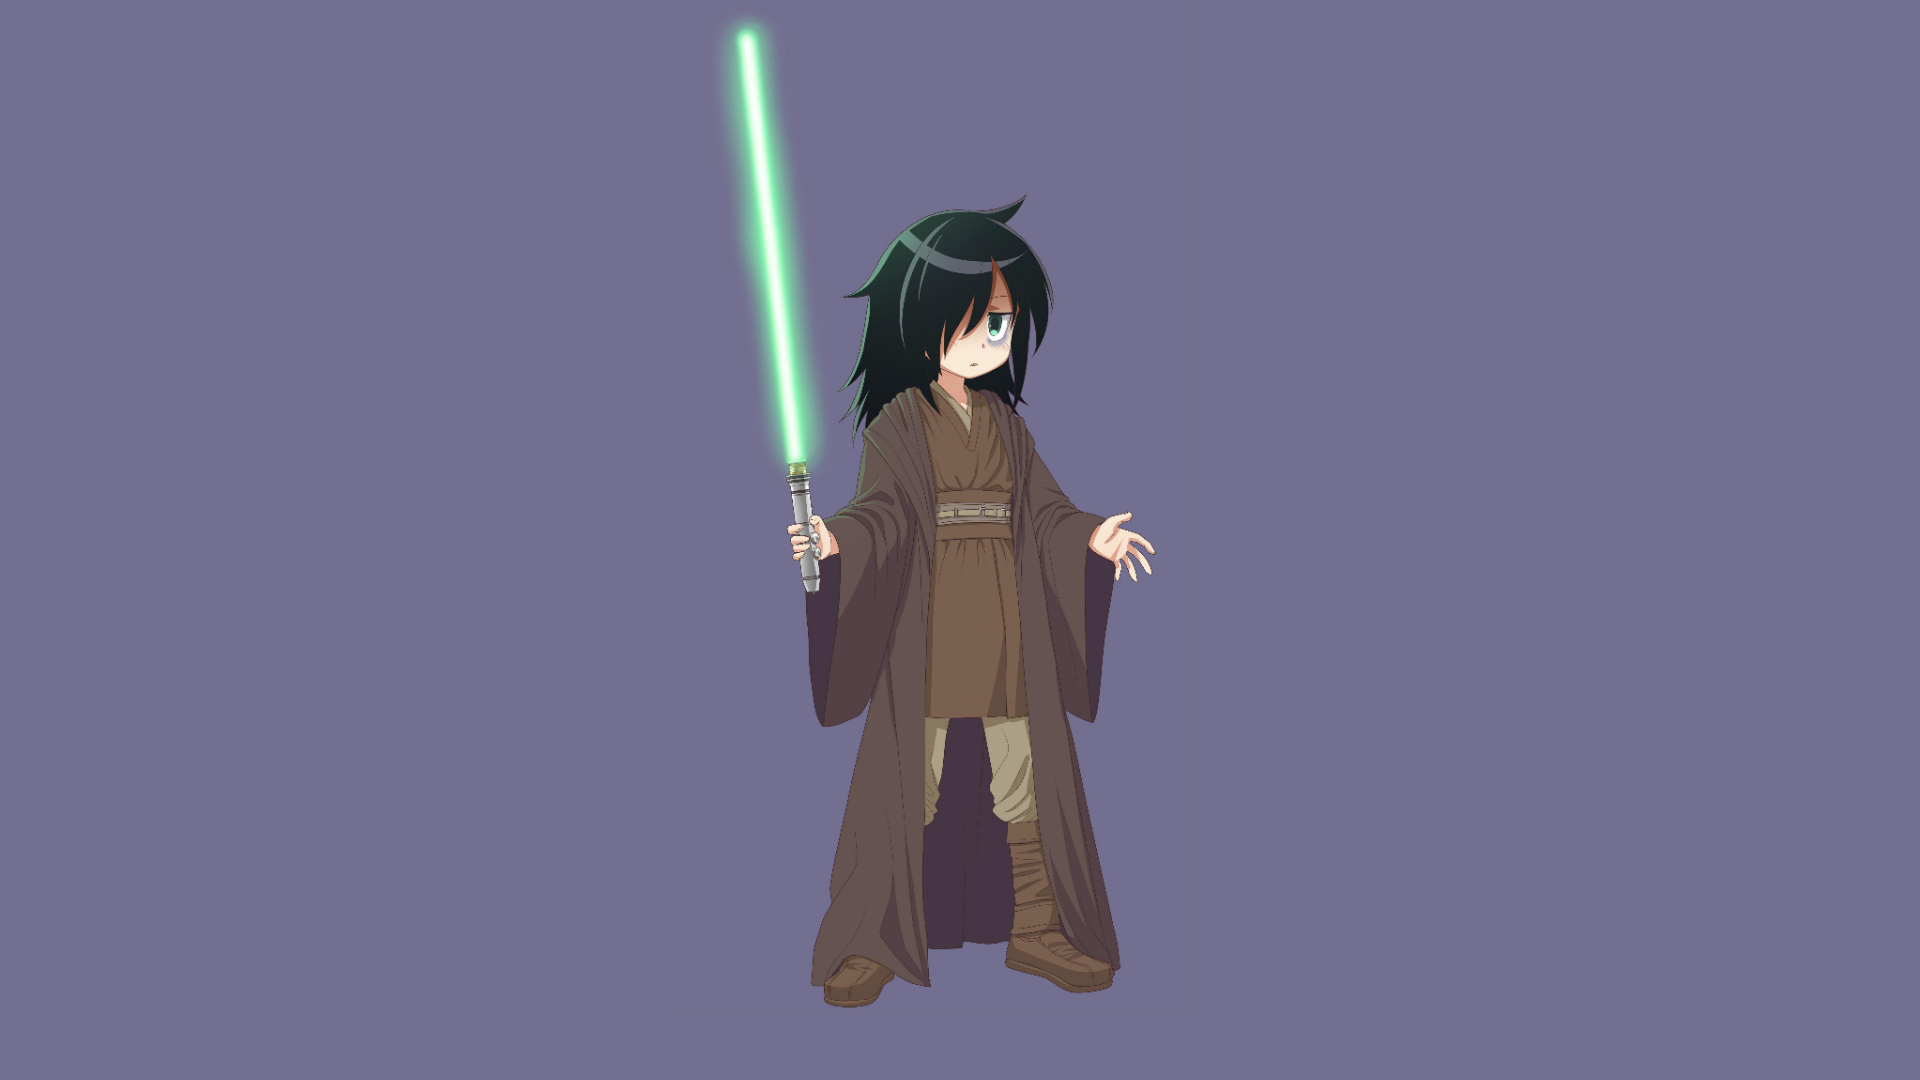 Star Wars Wallpapers 4k Anime 1920x1080 Wallpaper Teahub Io